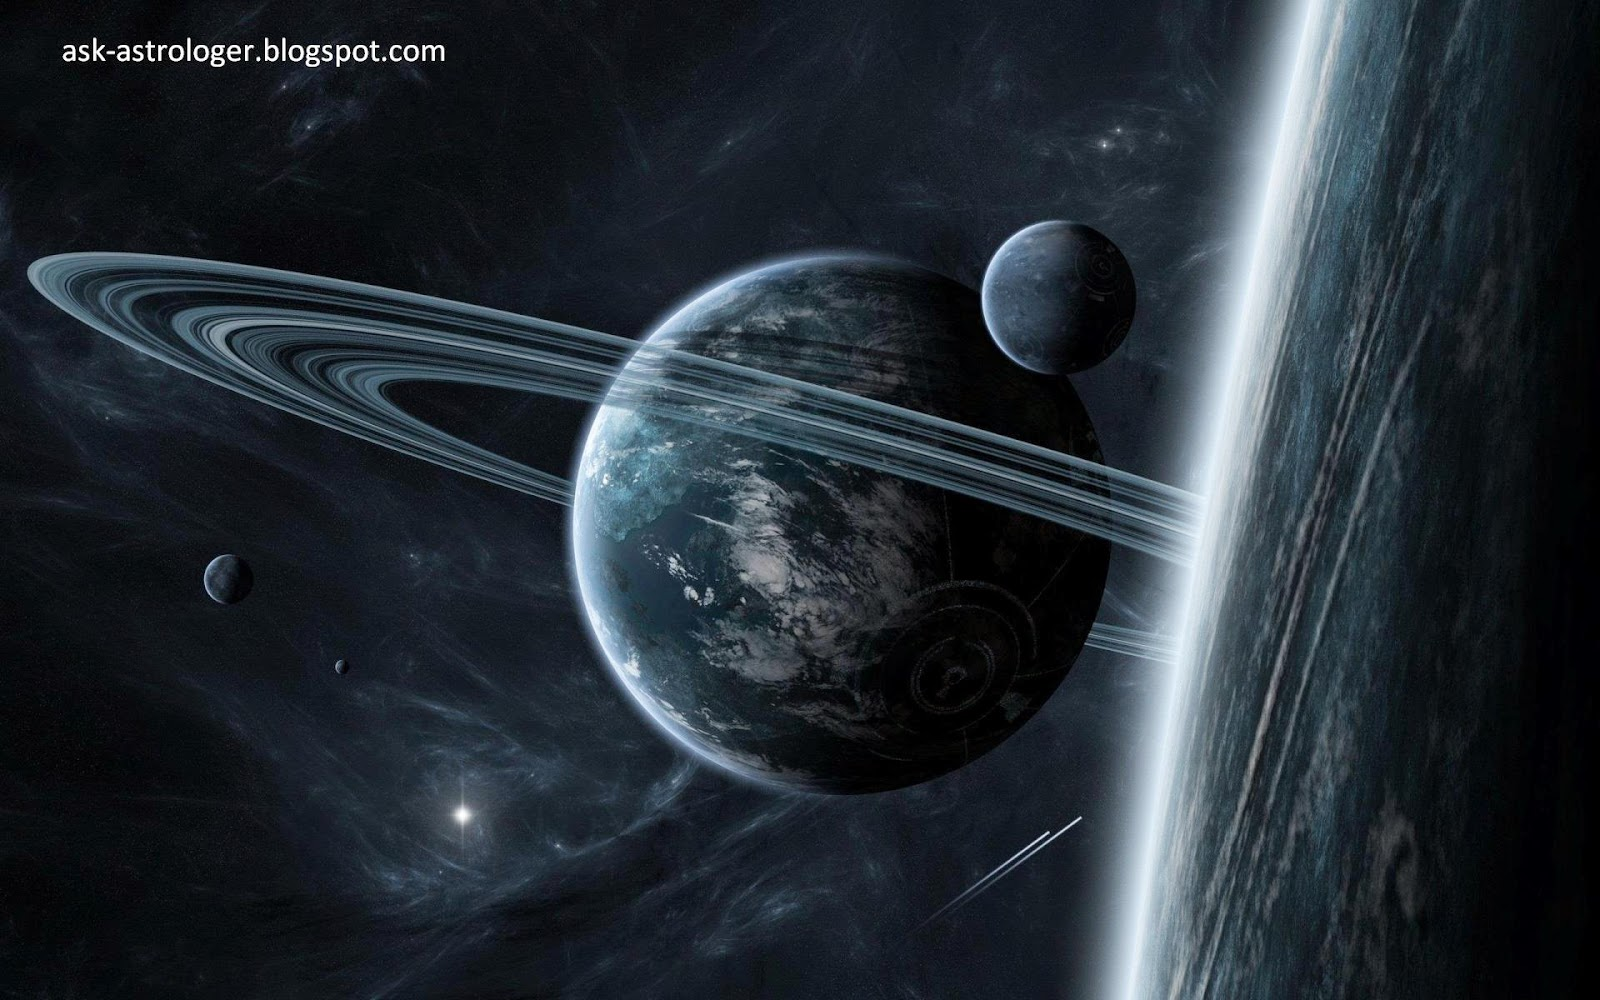 why do some planets have rings?